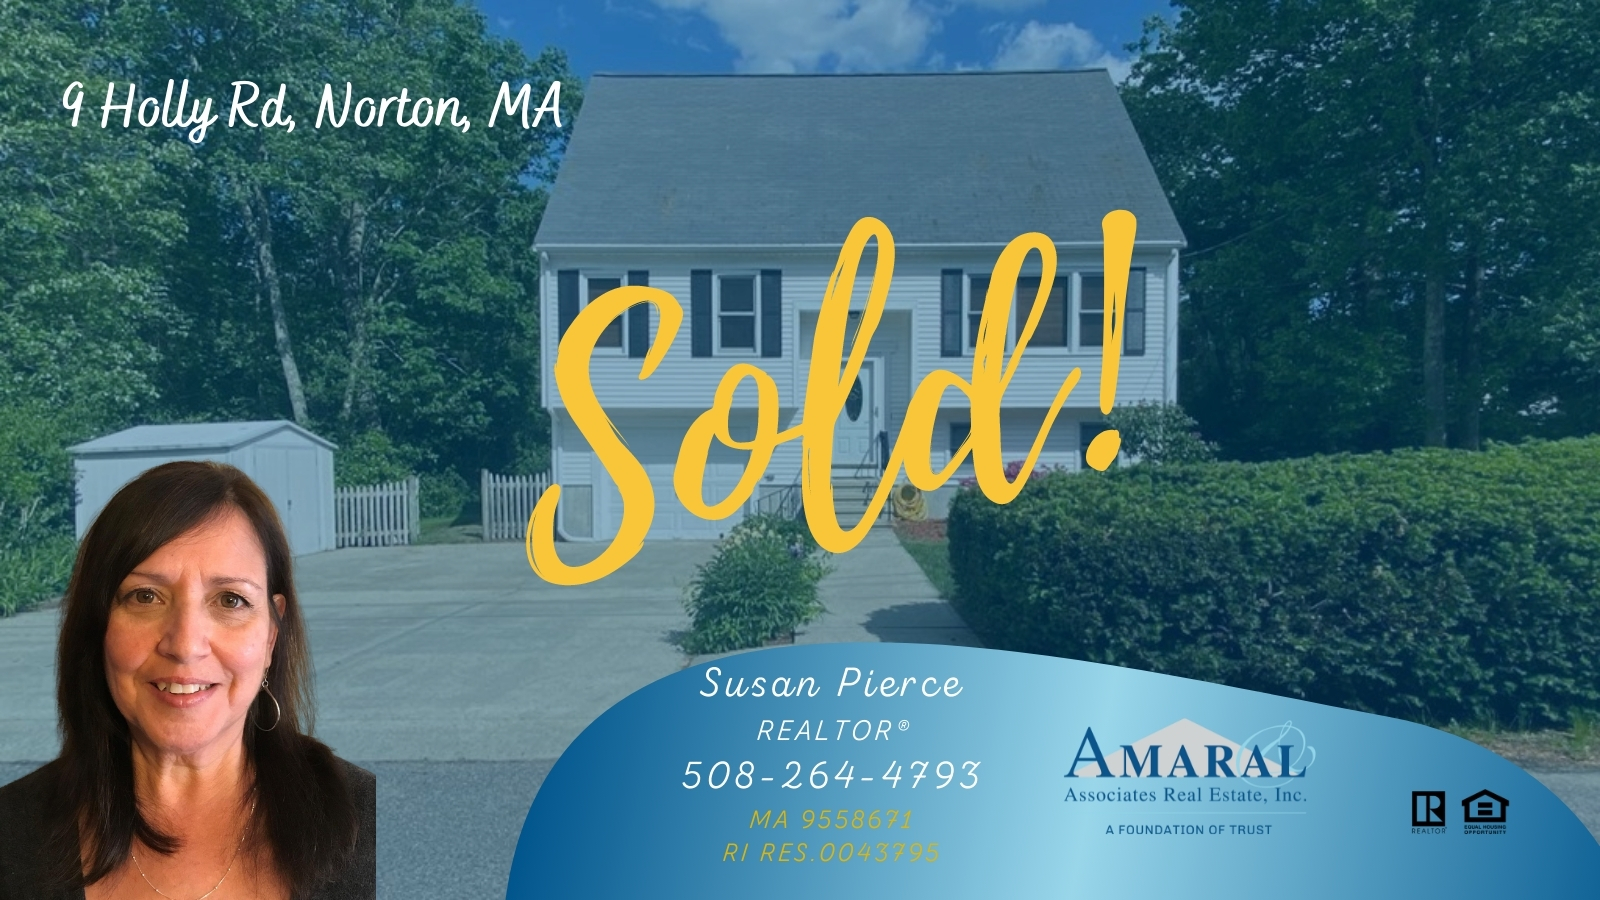 SOLD with Susan Pierce! 9 Holly Rd, Norton, MA